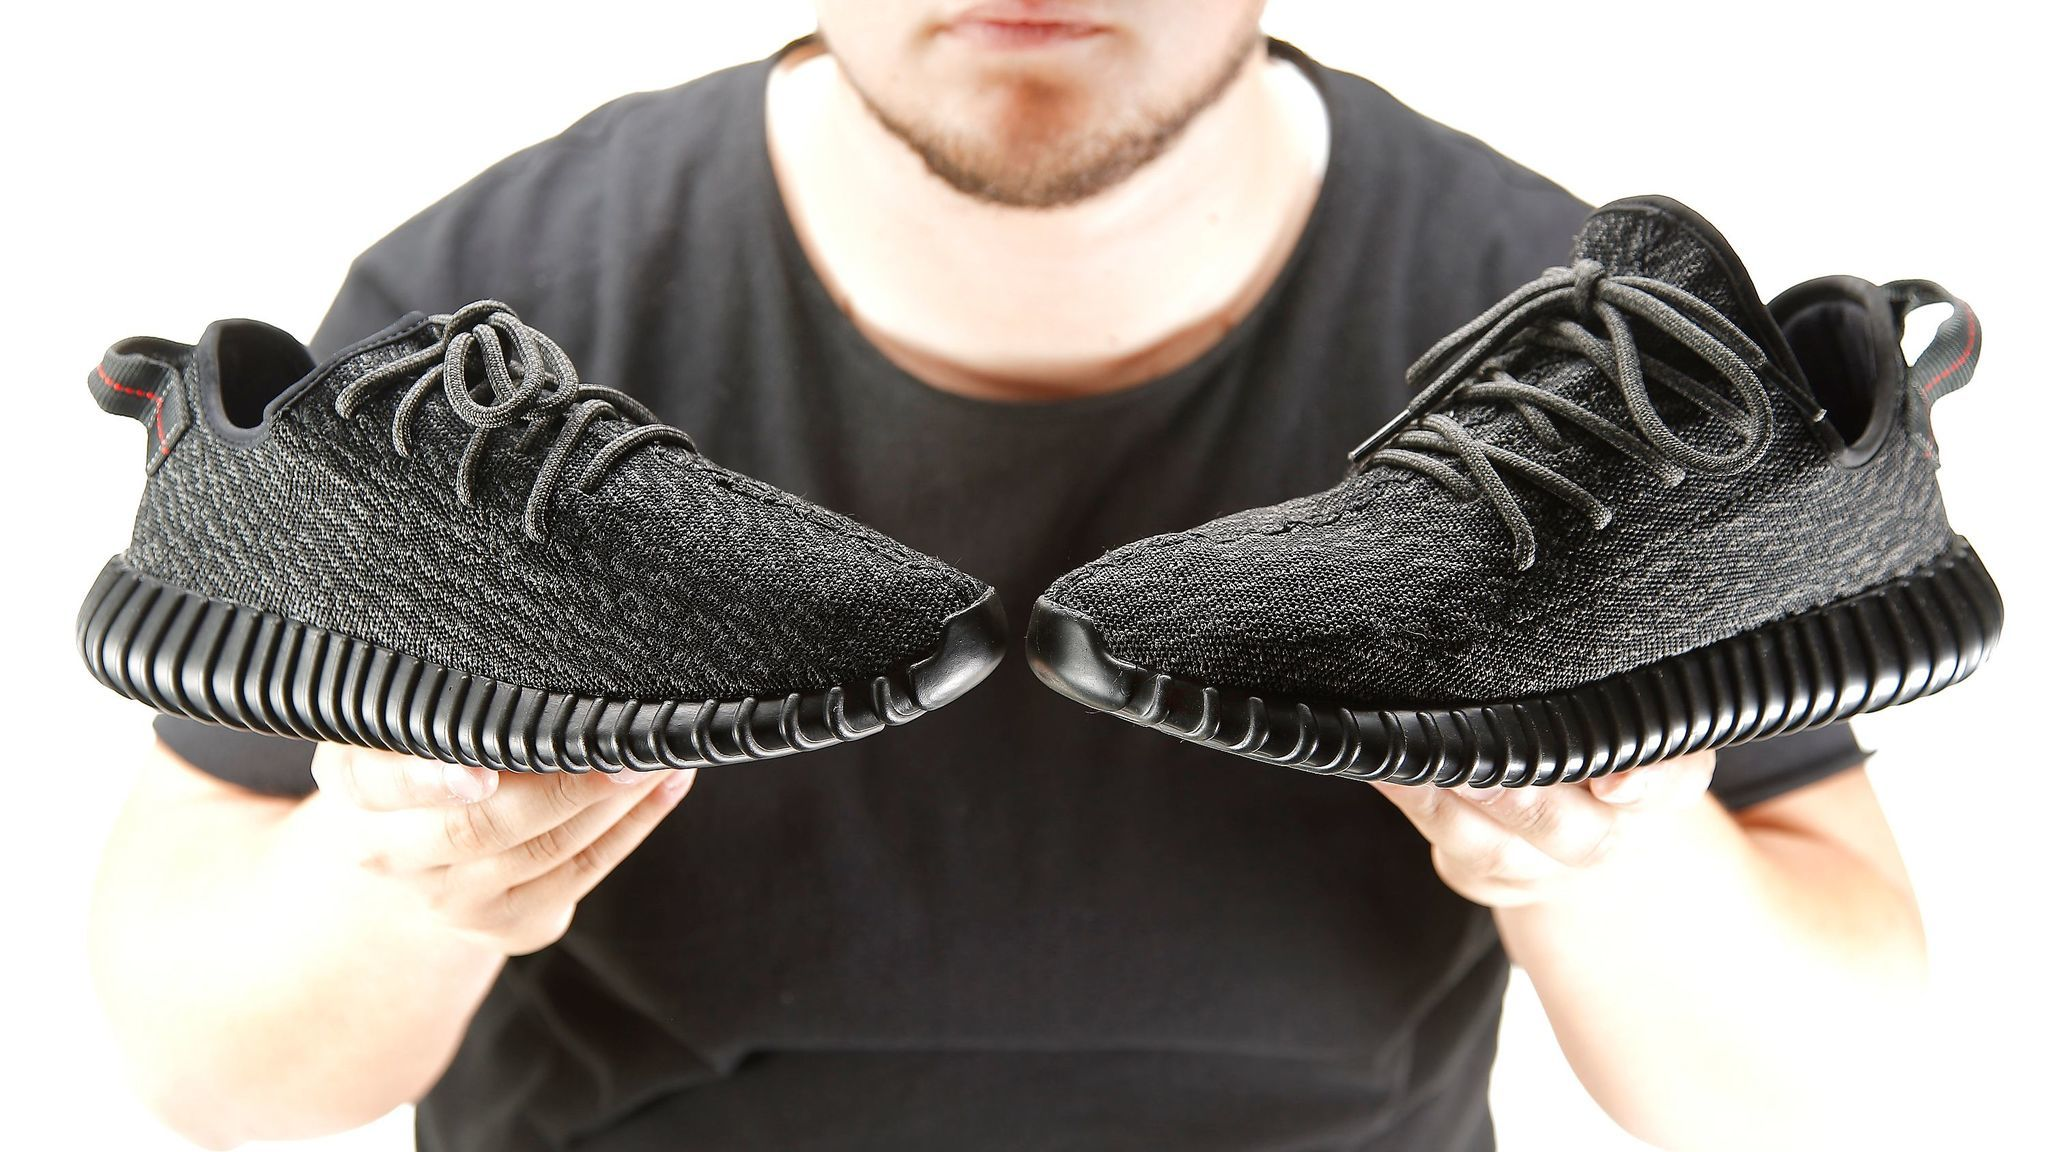 An authentic Yeezy, left, and a replica model owned by Kevin, right.